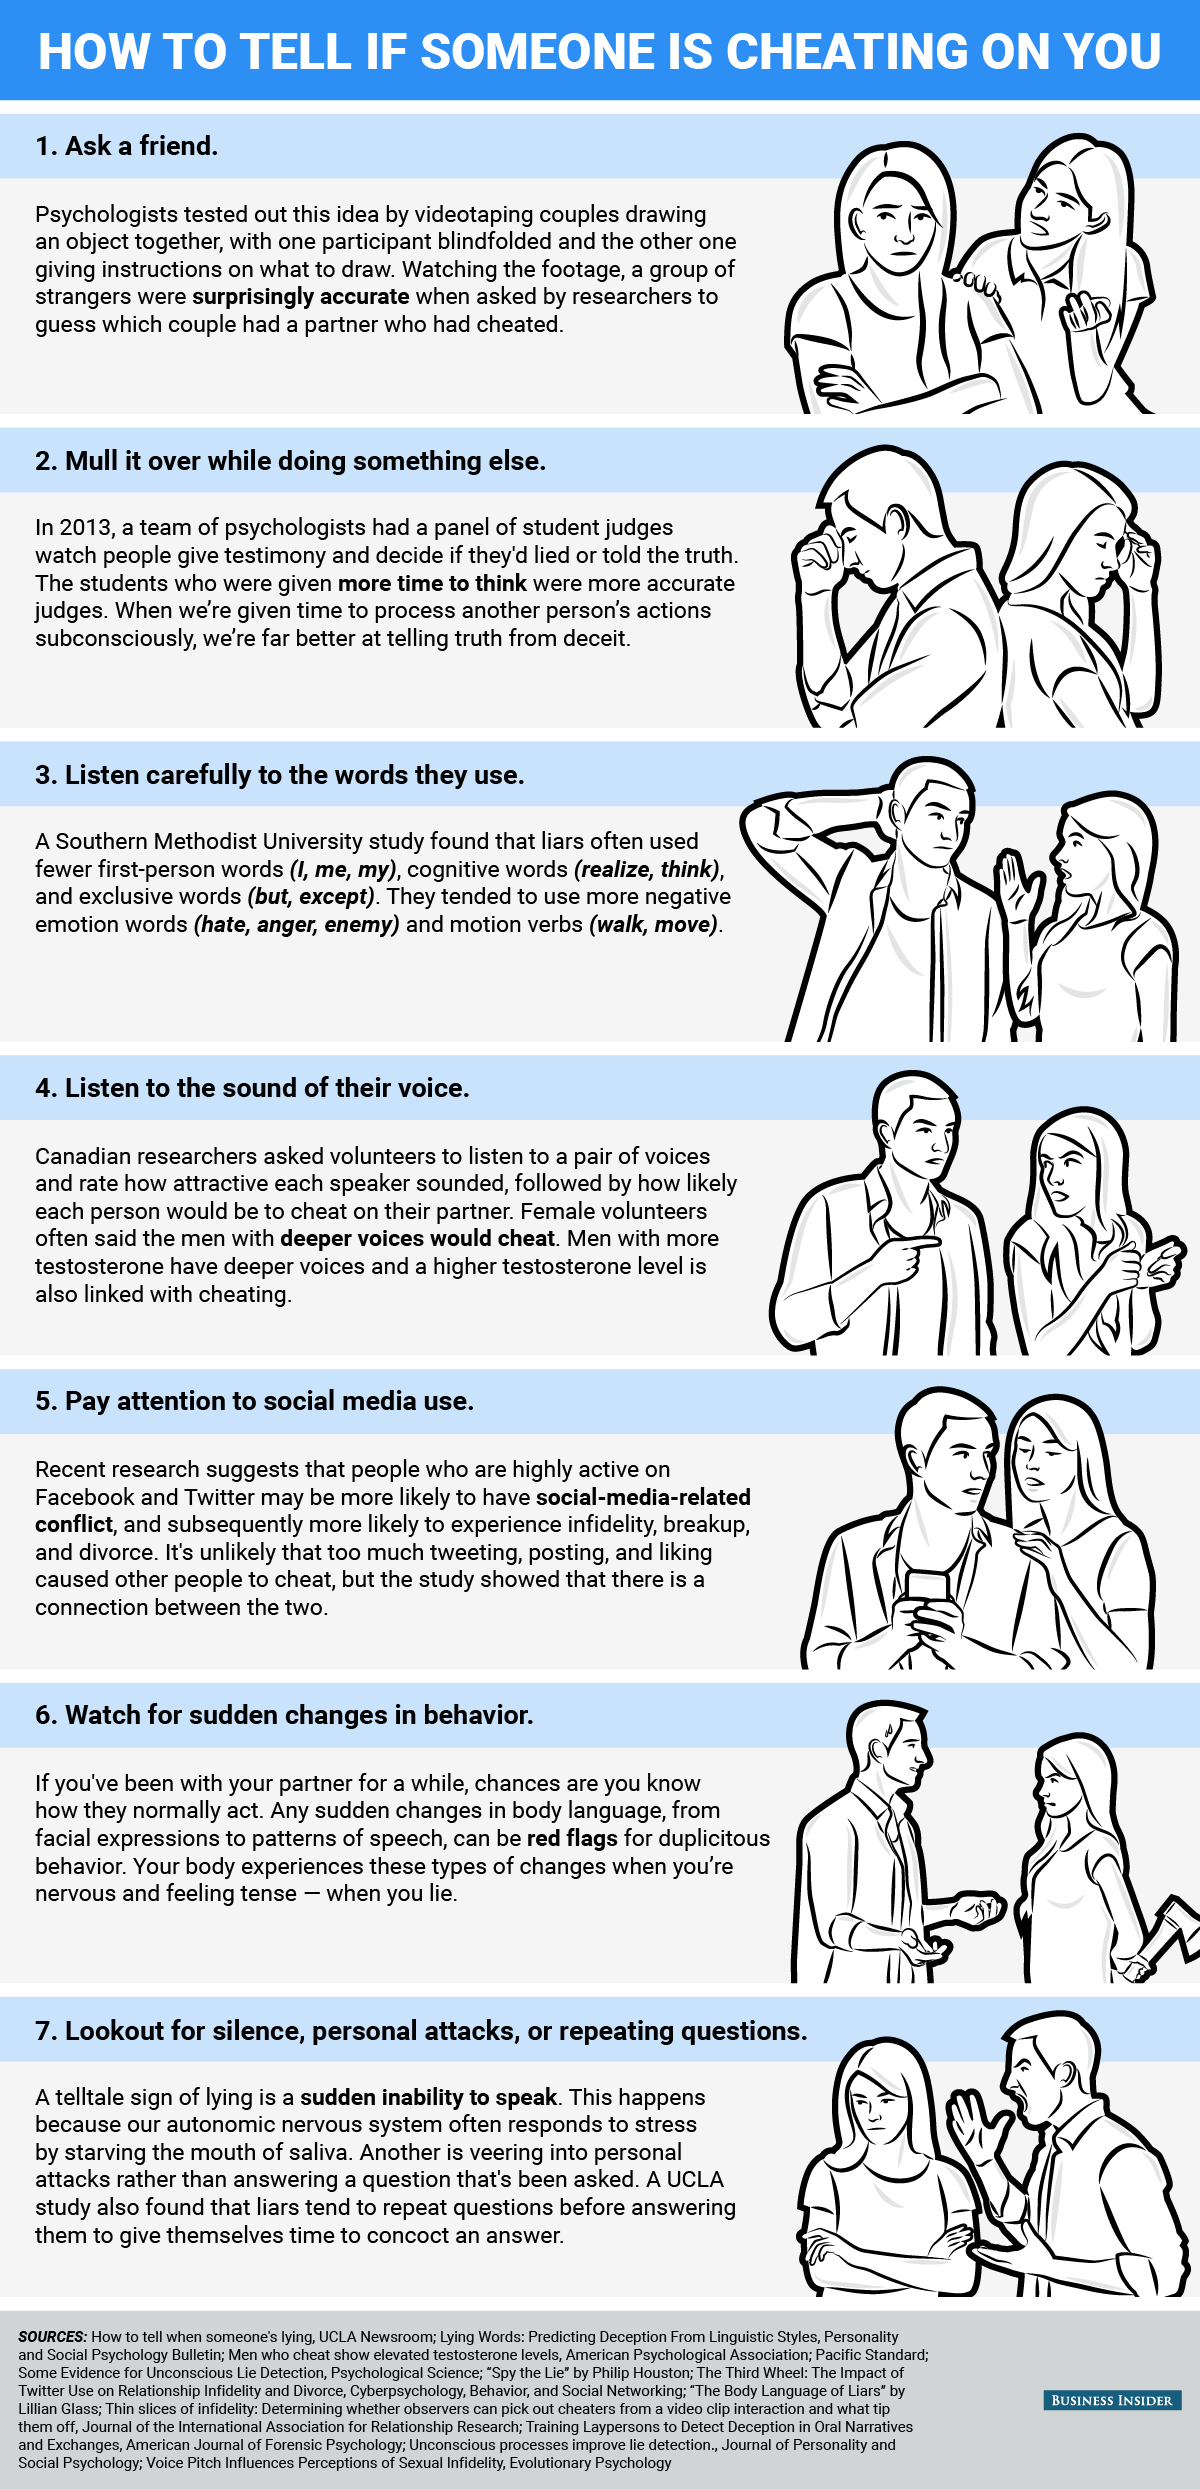 How to Know if Your Partner Is Having an Emotional Affair